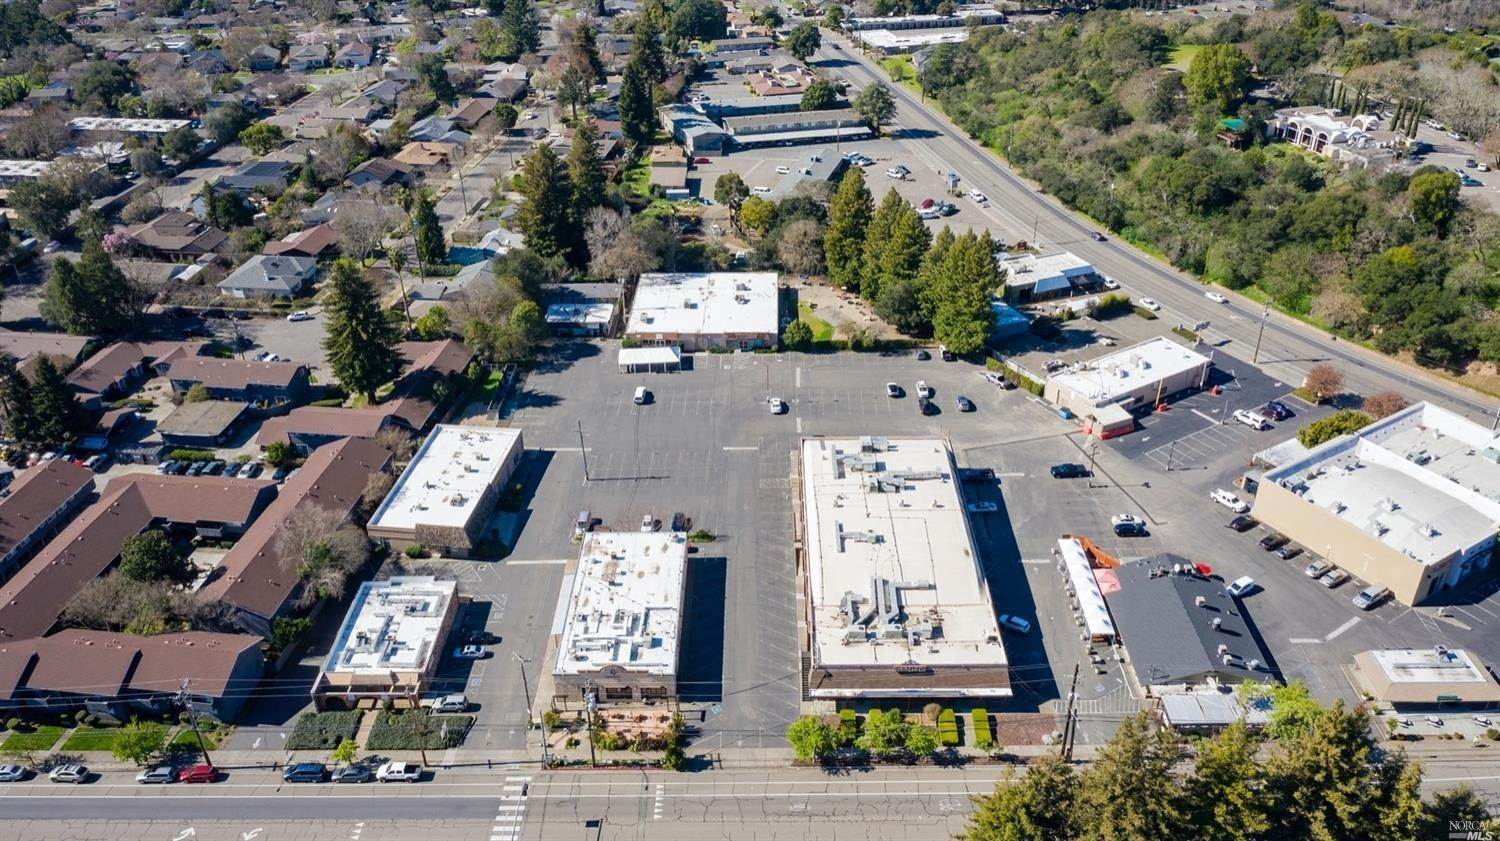 Commercial pour l Vente à 531 Summerfield Road Santa Rosa, Californie 95405 États-Unis